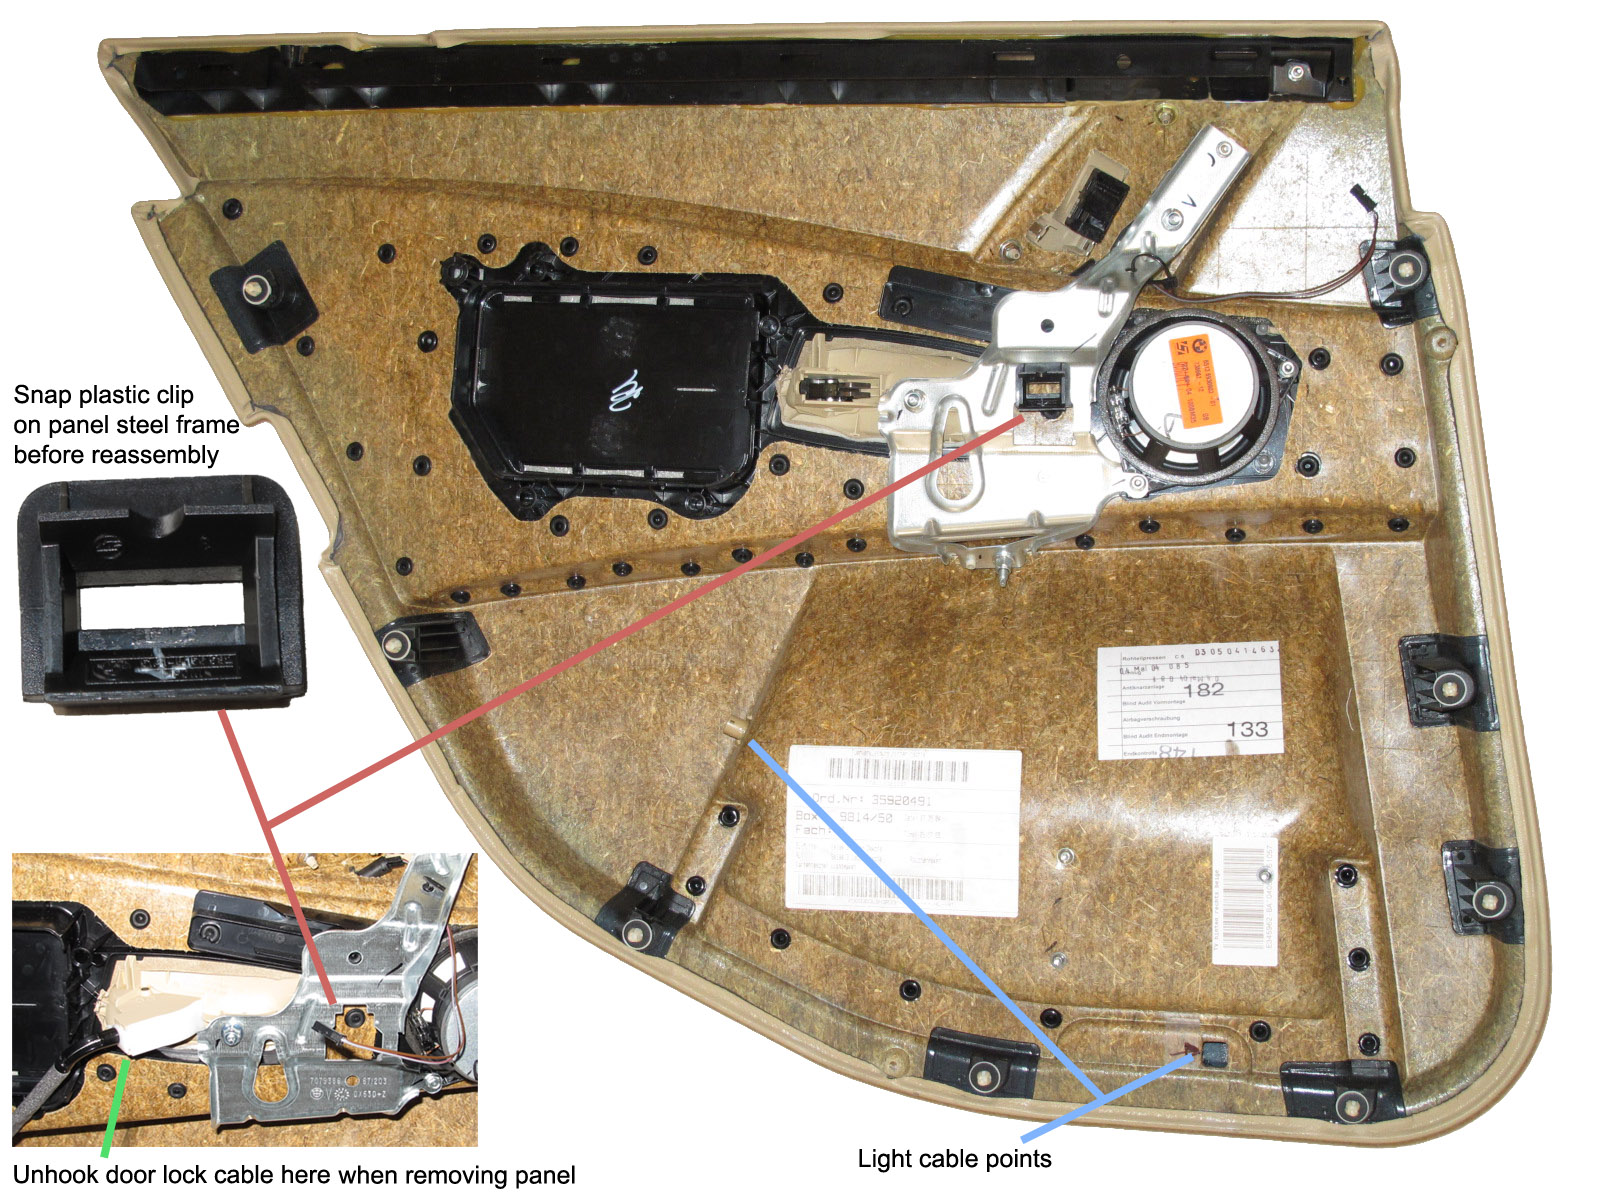 Fixing Stuff E60 Rear Window Regulator Repair Door Wiring Harness Diagram 2004 Bmw 525i As Mentioned Above Remove The Center Plastic Clip On Chassis Using A Needle Nose Pliers To Squeeze Spring Post Then Pull It Out